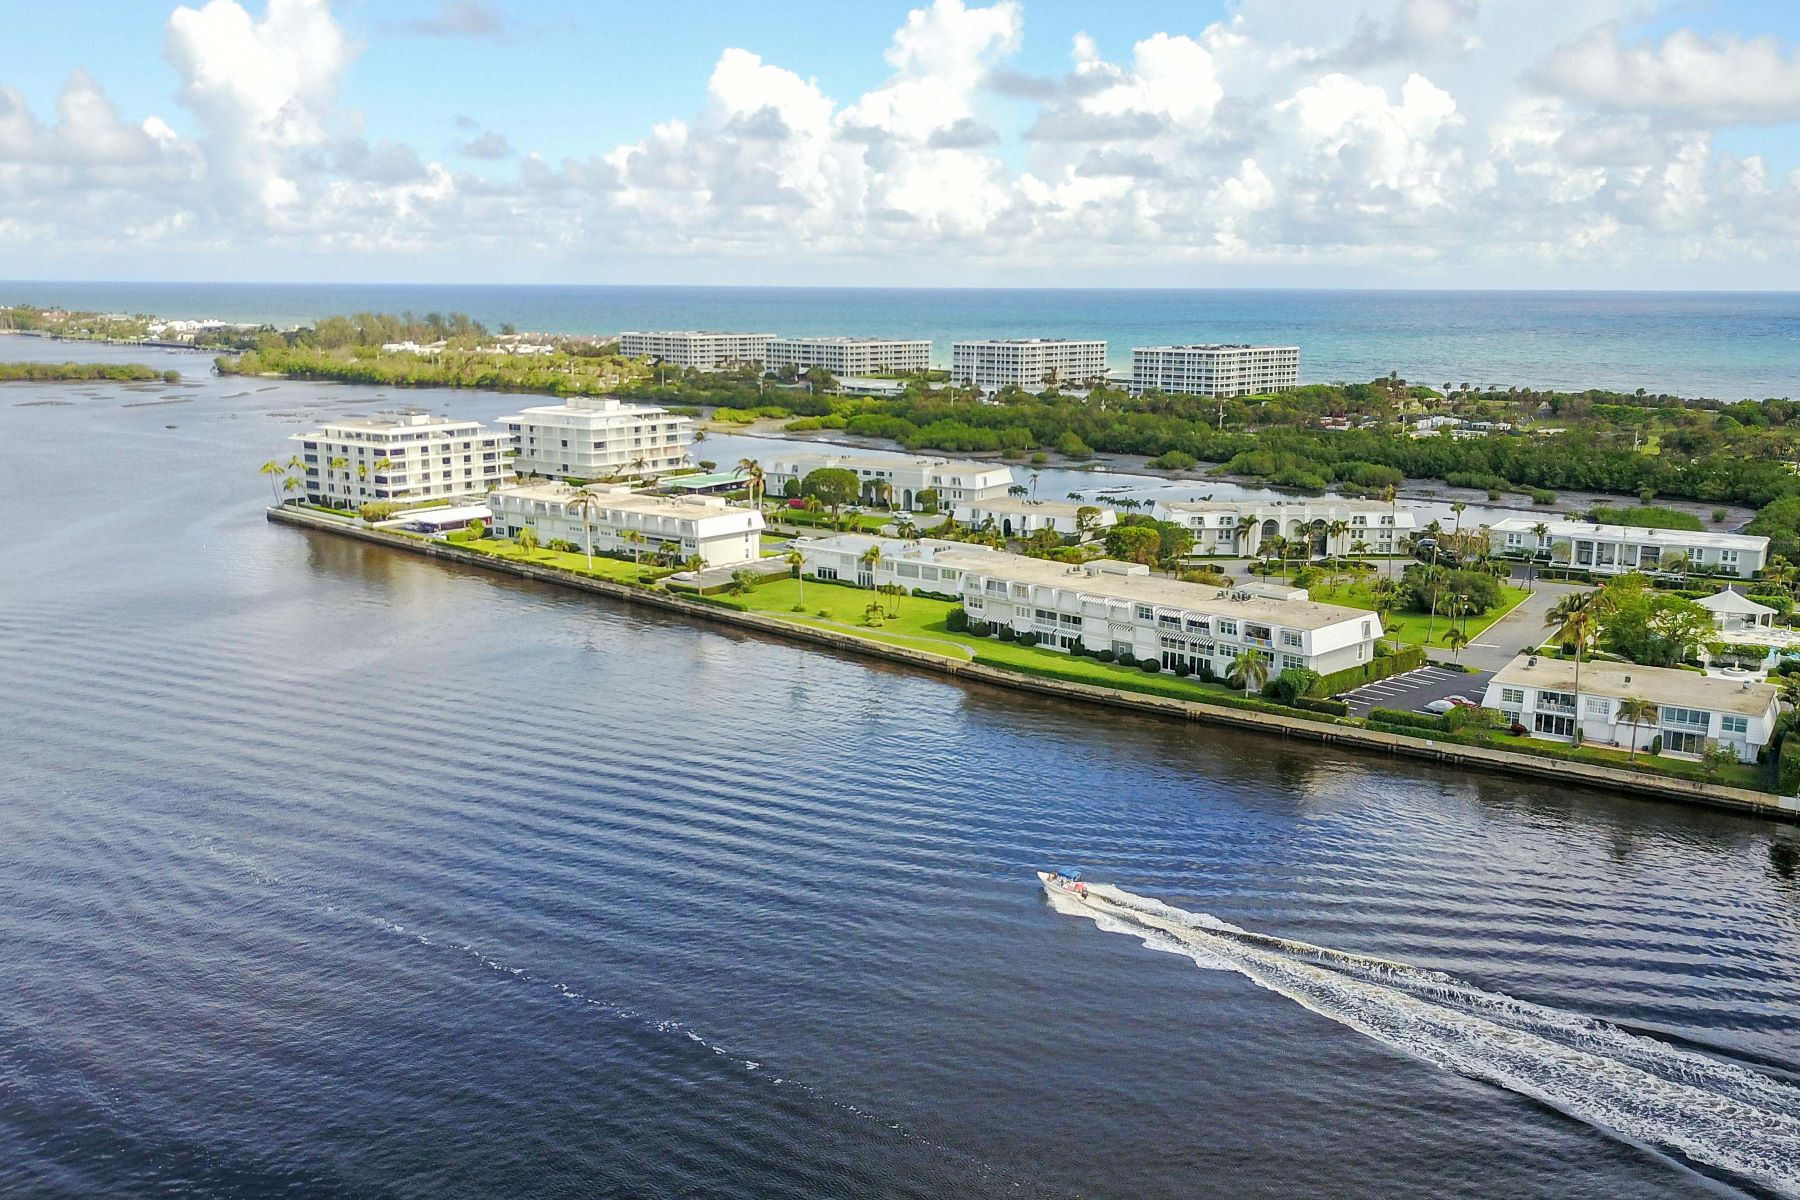 Additional photo for property listing at Ibis Isle Condo 2180 Ibis Isle Rd # 2 Palm Beach, Florida 33480 Verenigde Staten